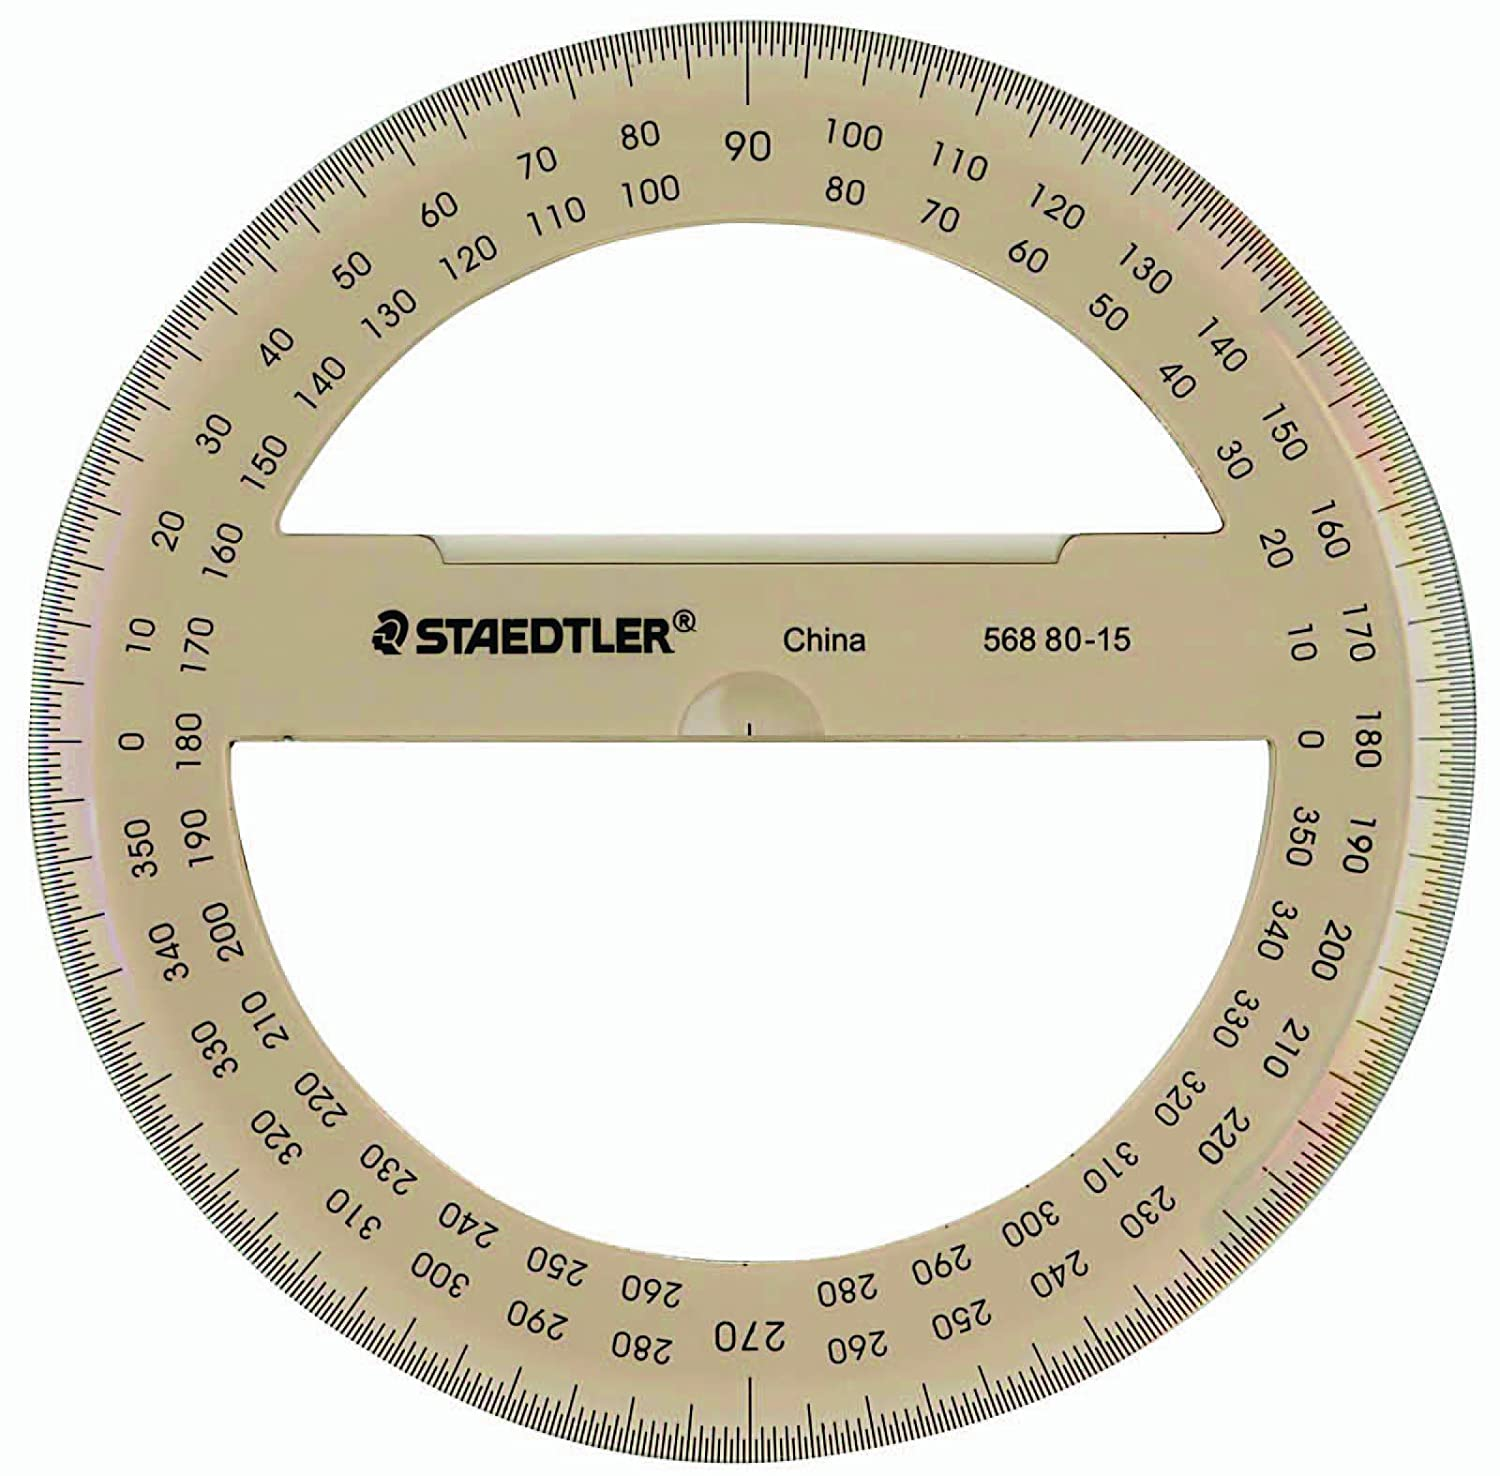 worksheet Protractor Image amazon com staedtler protractor 6 360 degrees 56880 15bk educational and hobby protractors office products